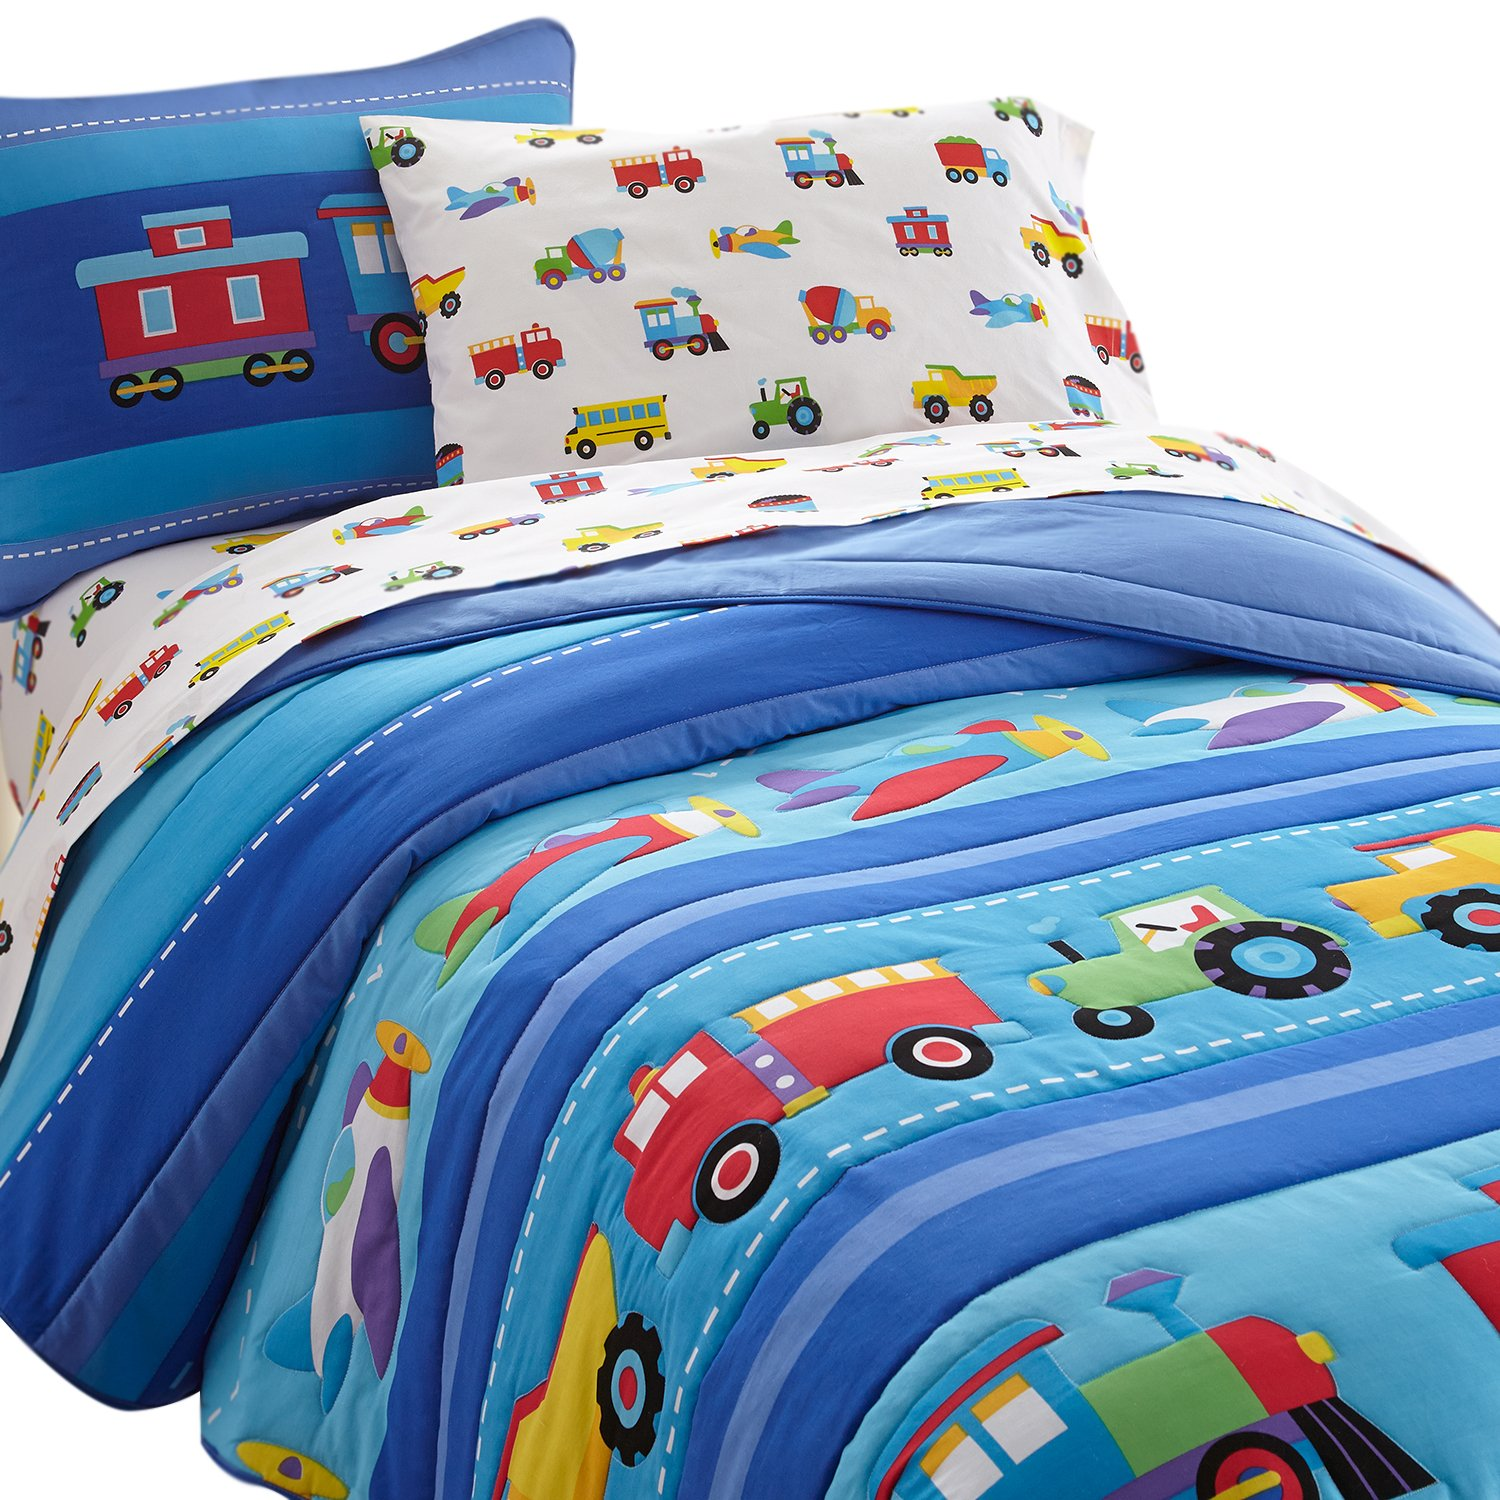 Wildkin Lightweight Twin Comforter Set, 100% Cotton Twin Comforter with Embroidered Details, Includes One Matching Sham, Coordinates with Other Room Décor, Olive Kids Design – Trains, Planes, Trucks